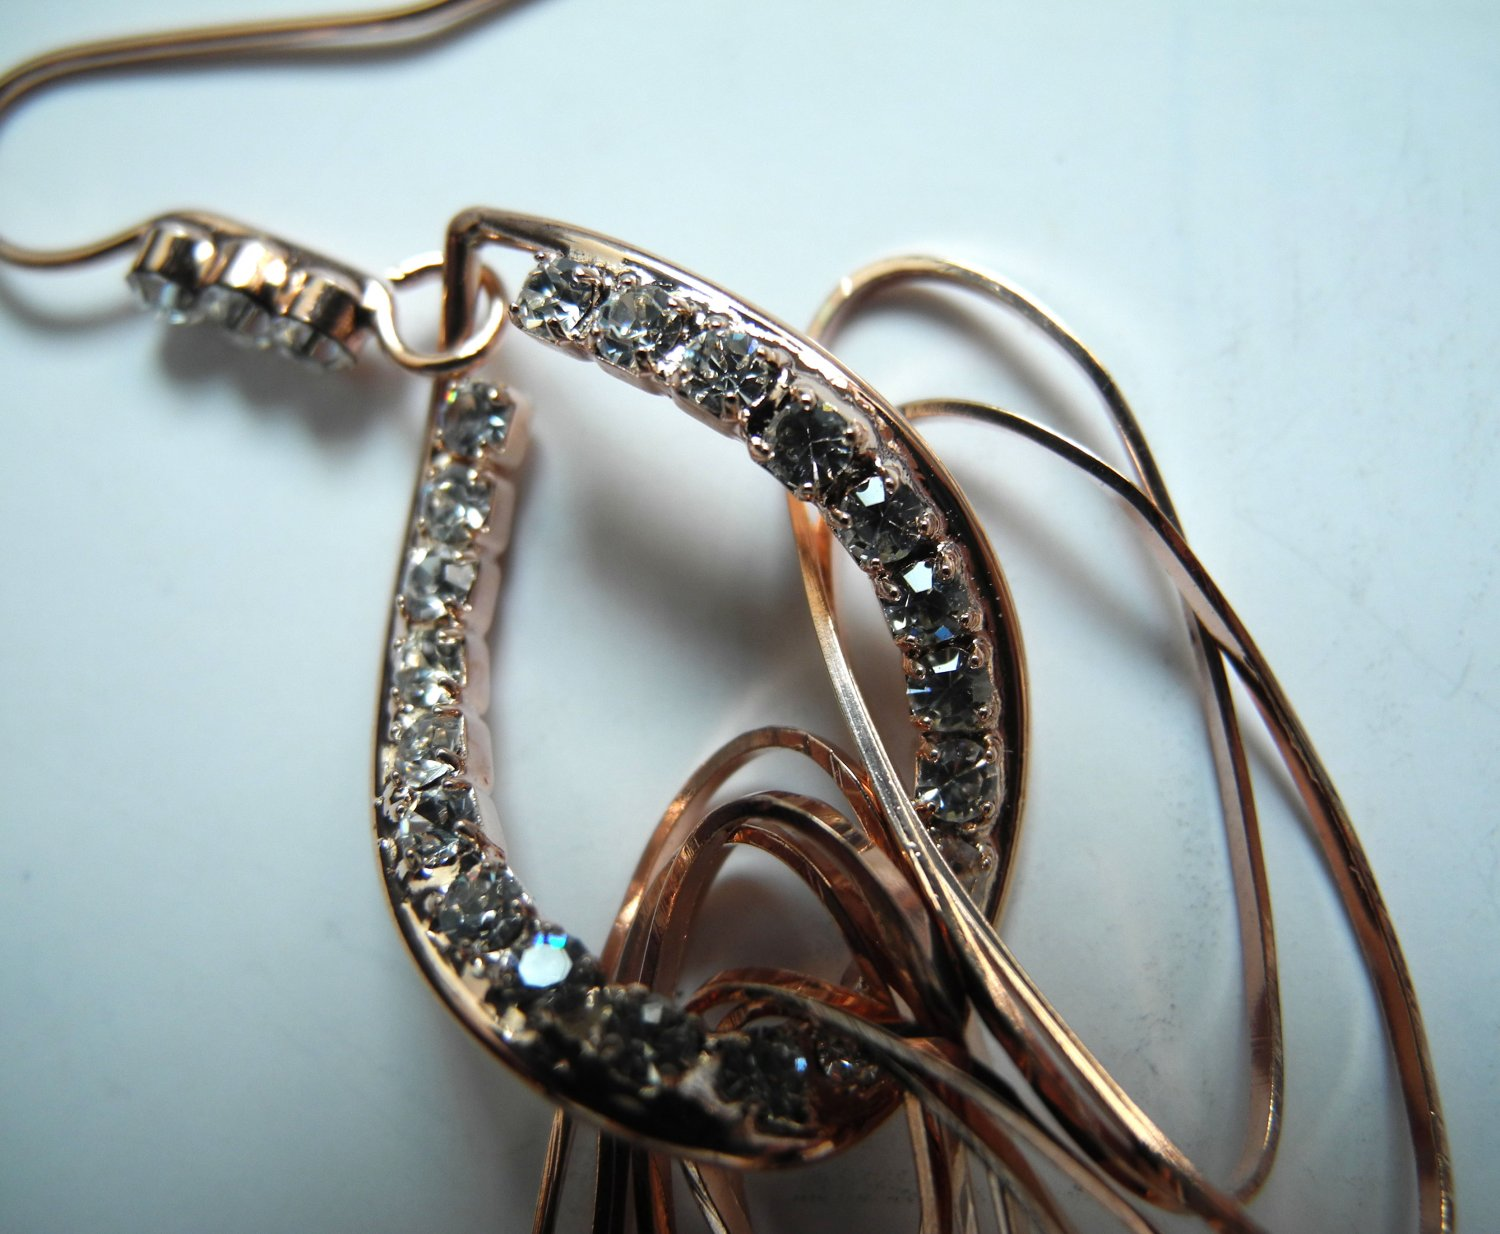 Imitation Rose Gold Plated Earrings detailing with find rhinestones hook type